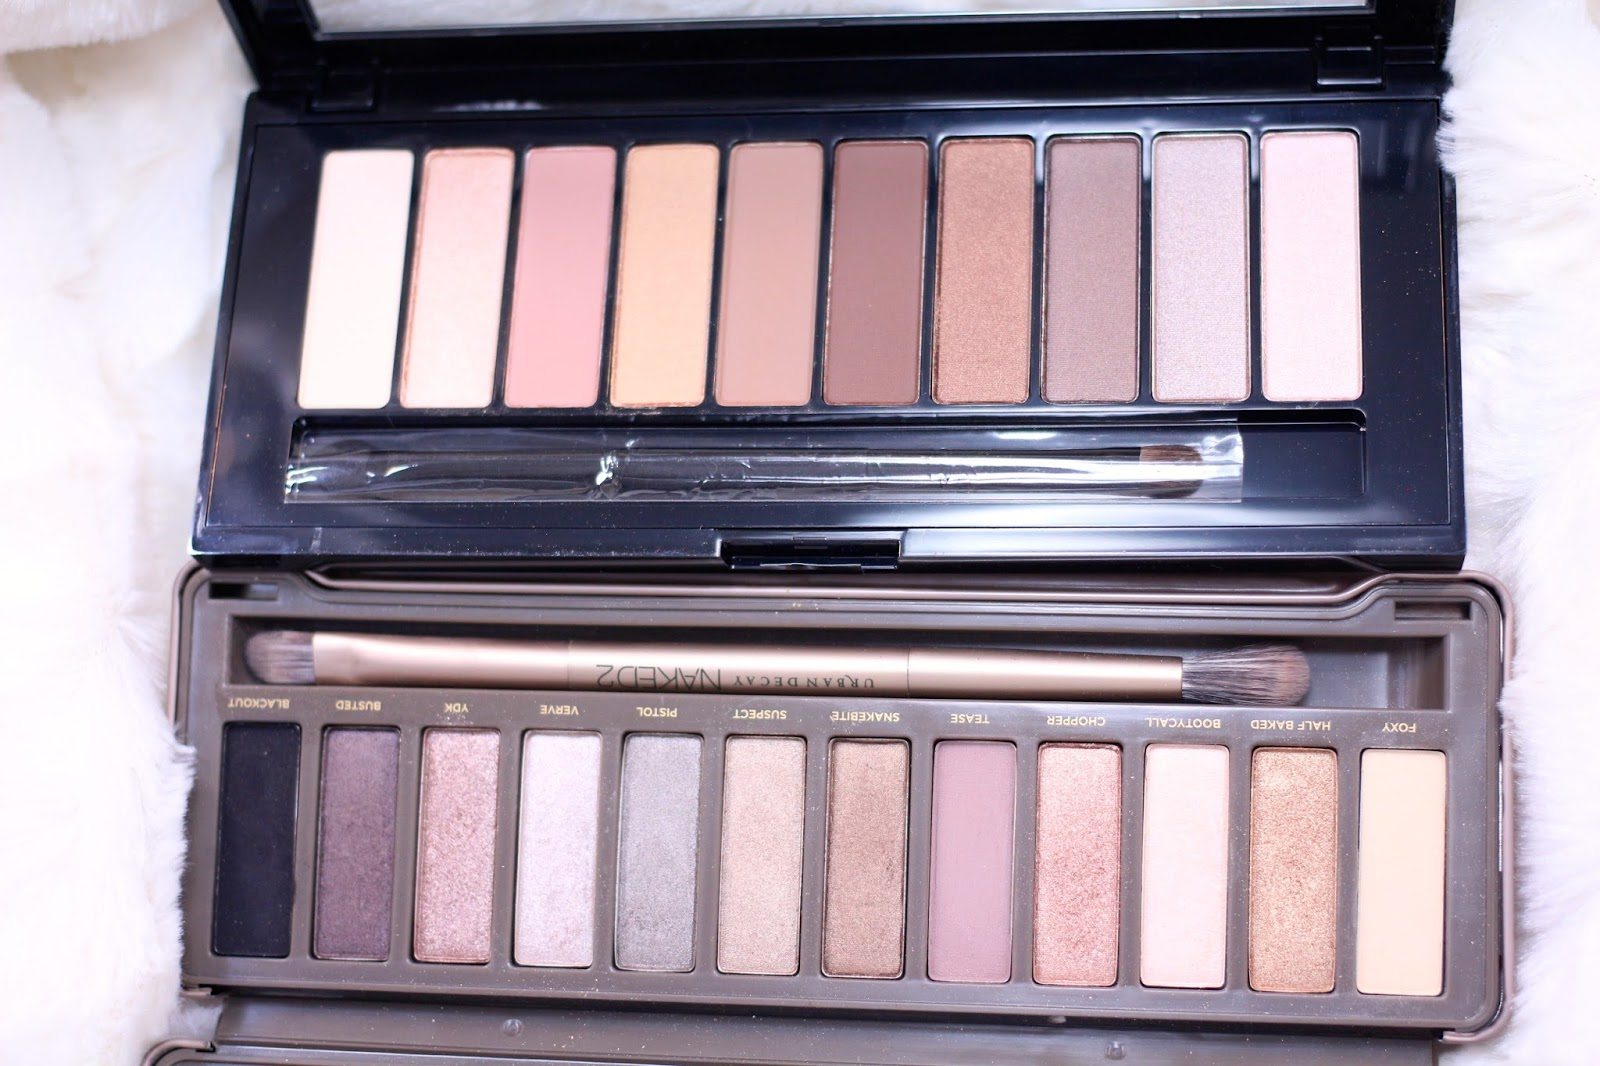 New! LOreal La Palette Nude 1 & 2 Review/Swatches